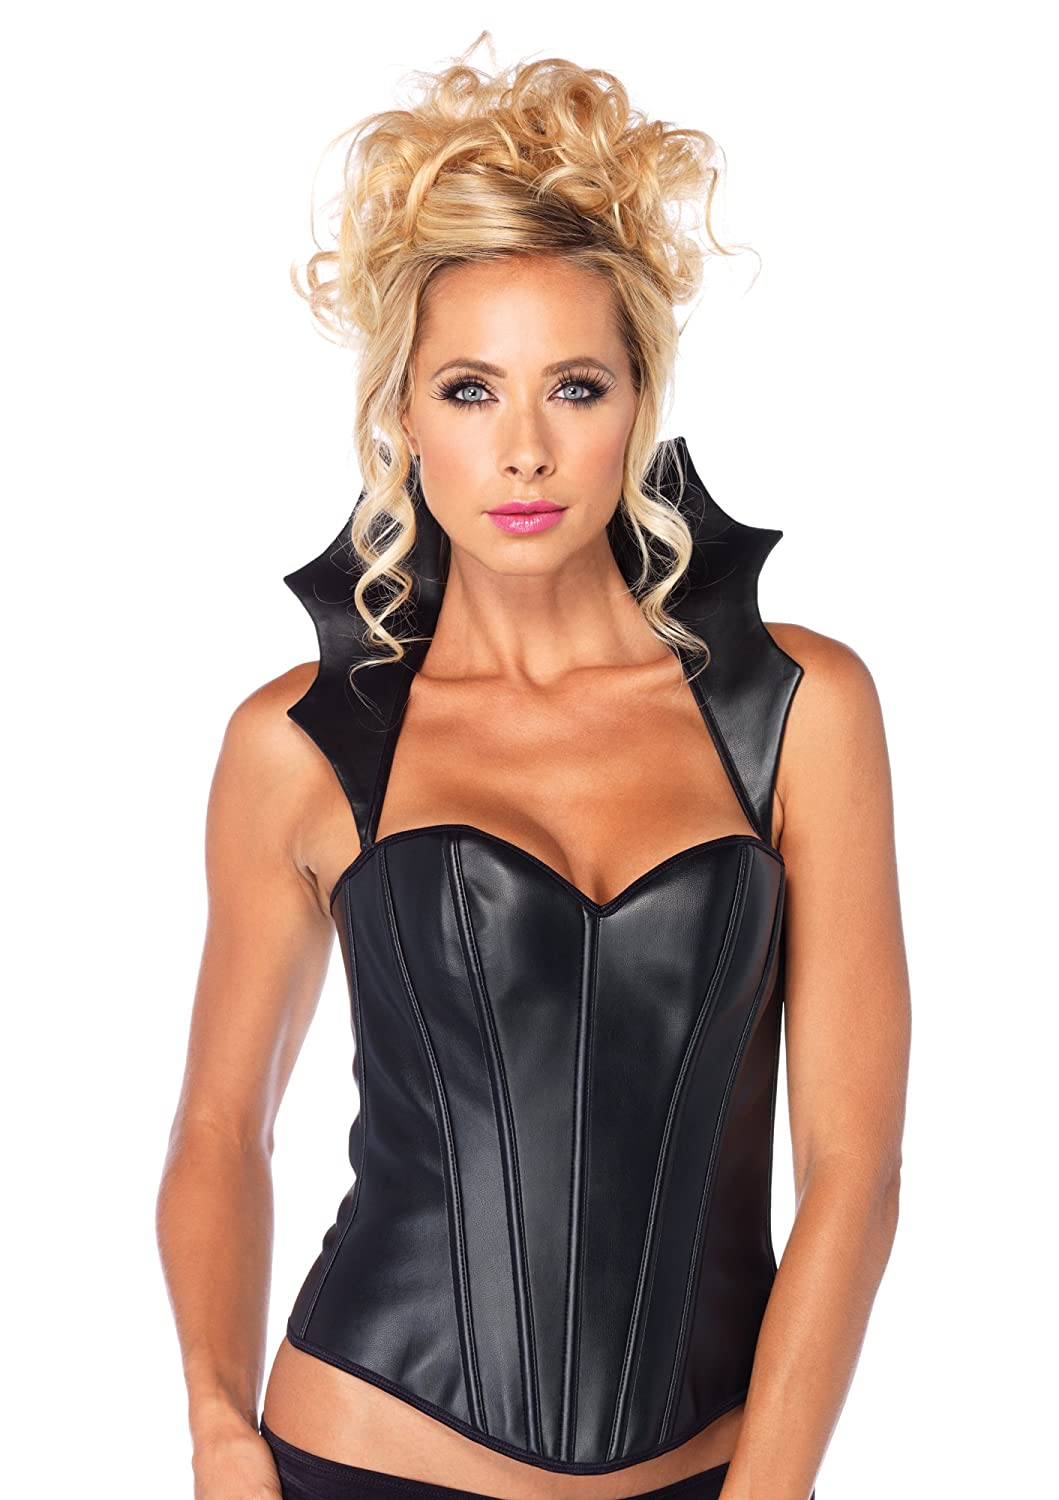 e249f7ec620 Leg avenue piece faux vamp corset with silhouette boning and removable  collar clothing jpg 1059x1500 Corset